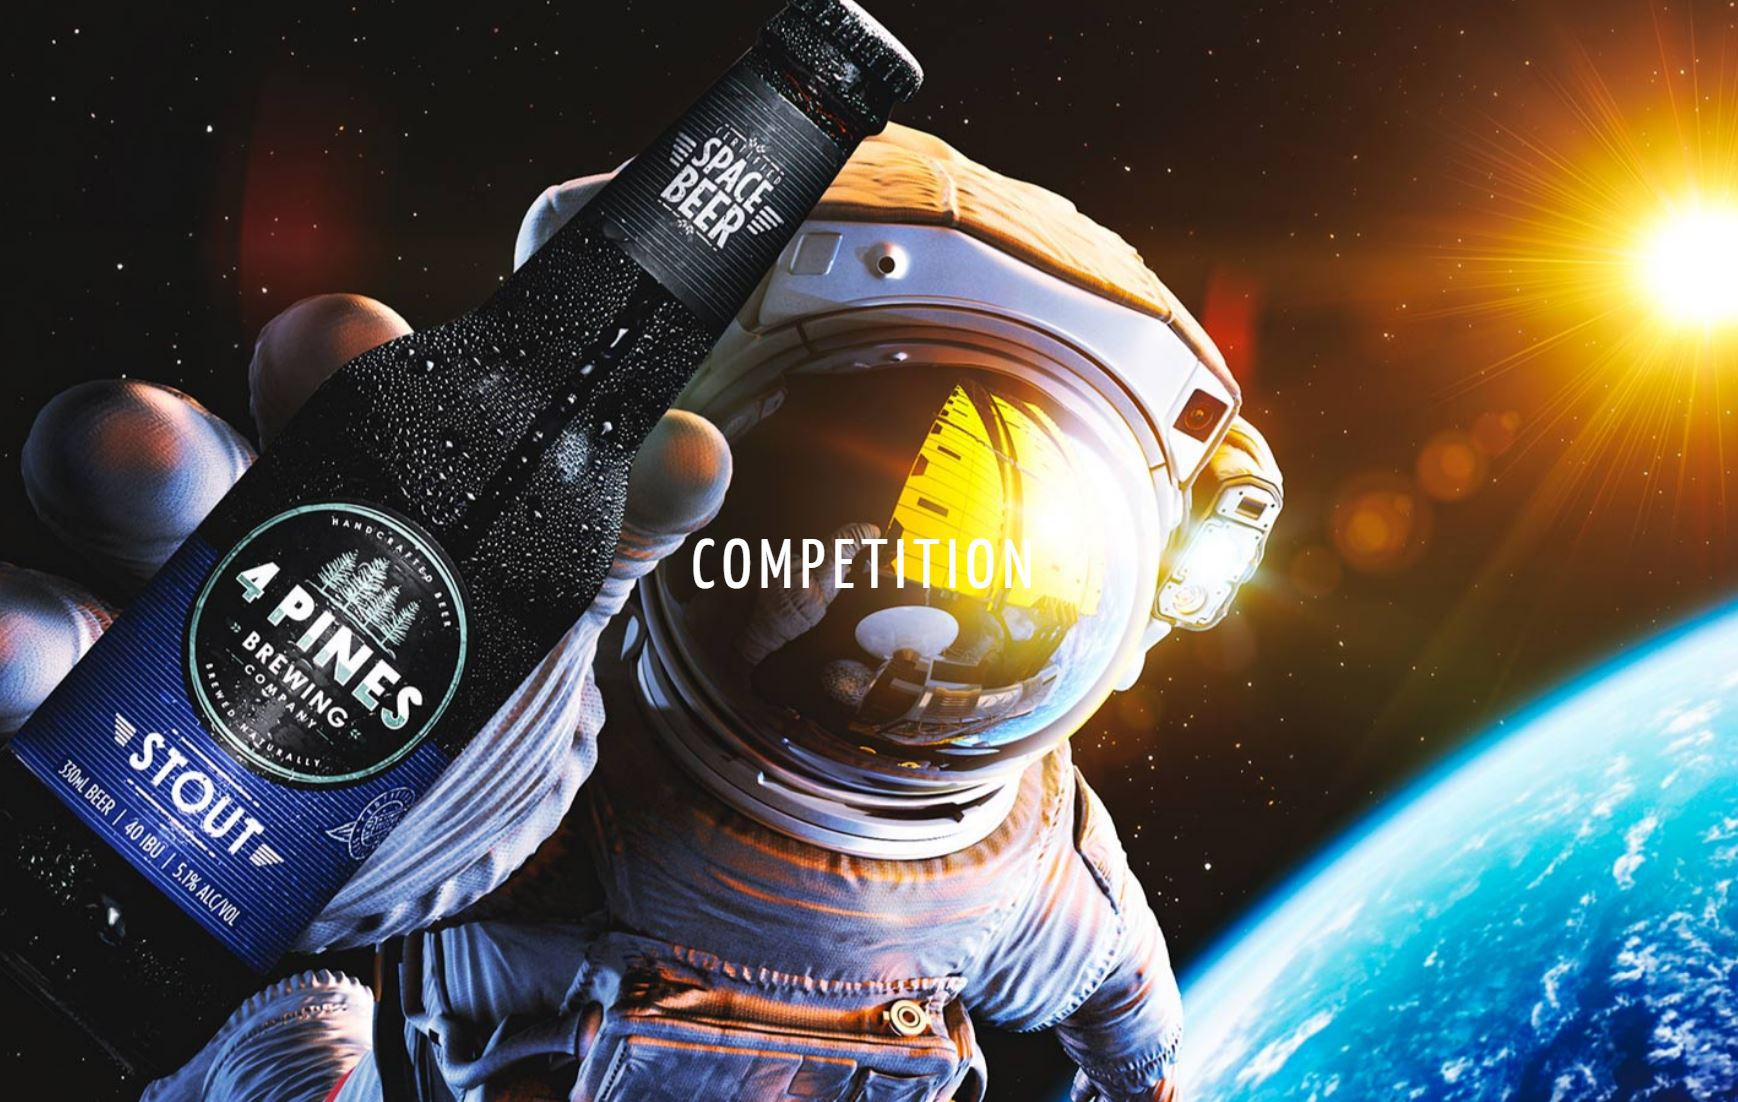 Vostok Space Beer